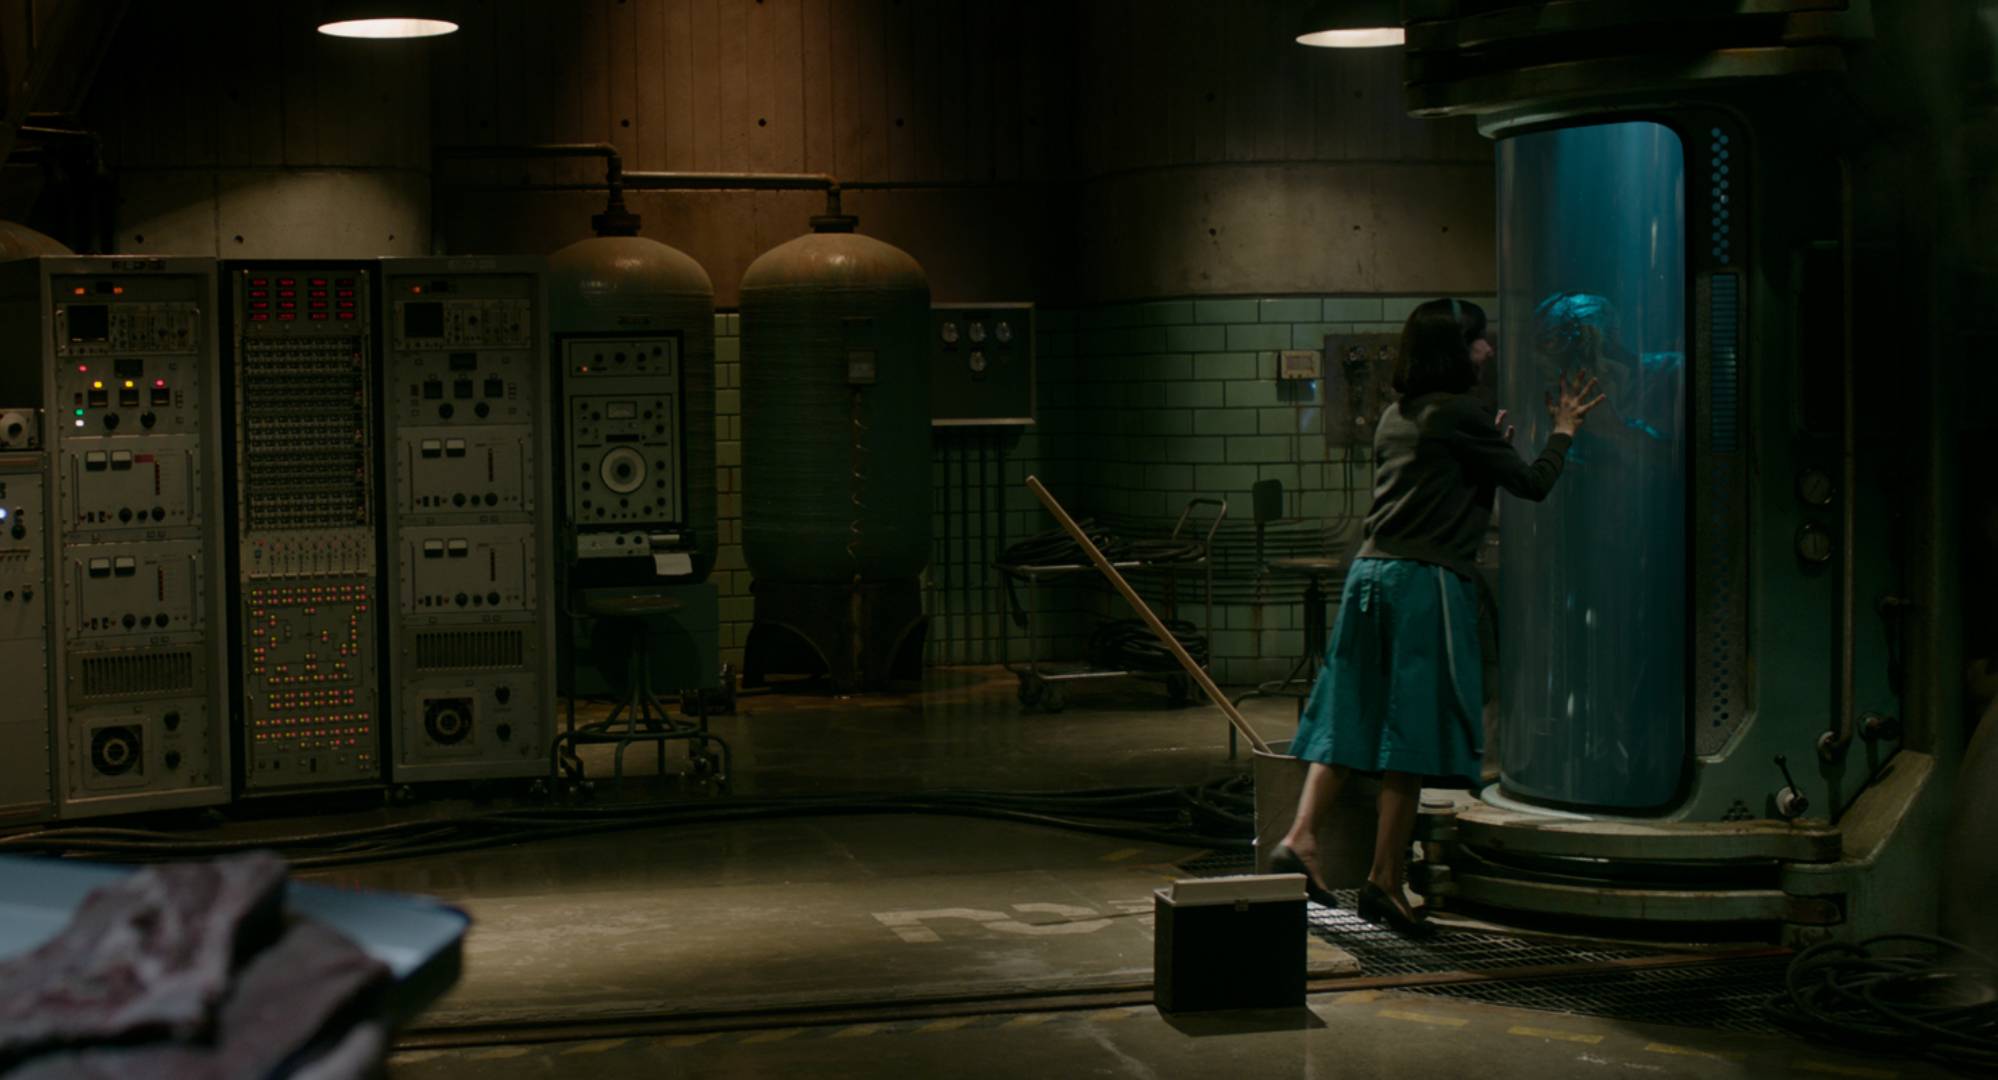 Exclusive The Shape Of Water Images Give Us A Tour Of Del